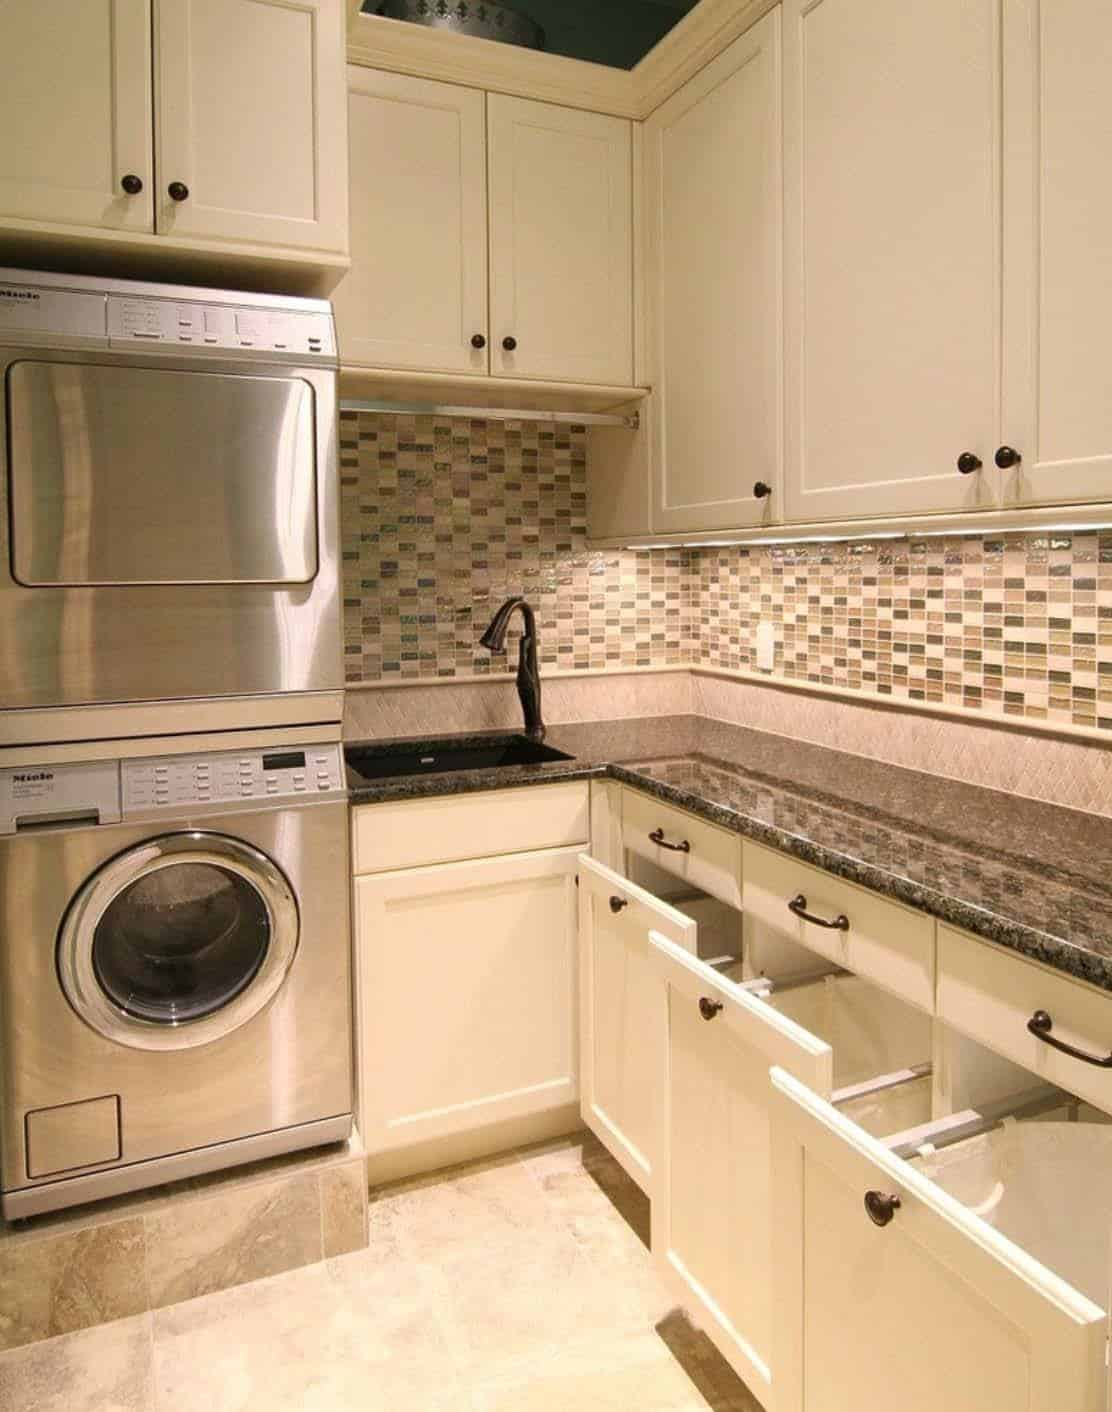 Laundry Room Organization Ideas-09-1 Kindesign